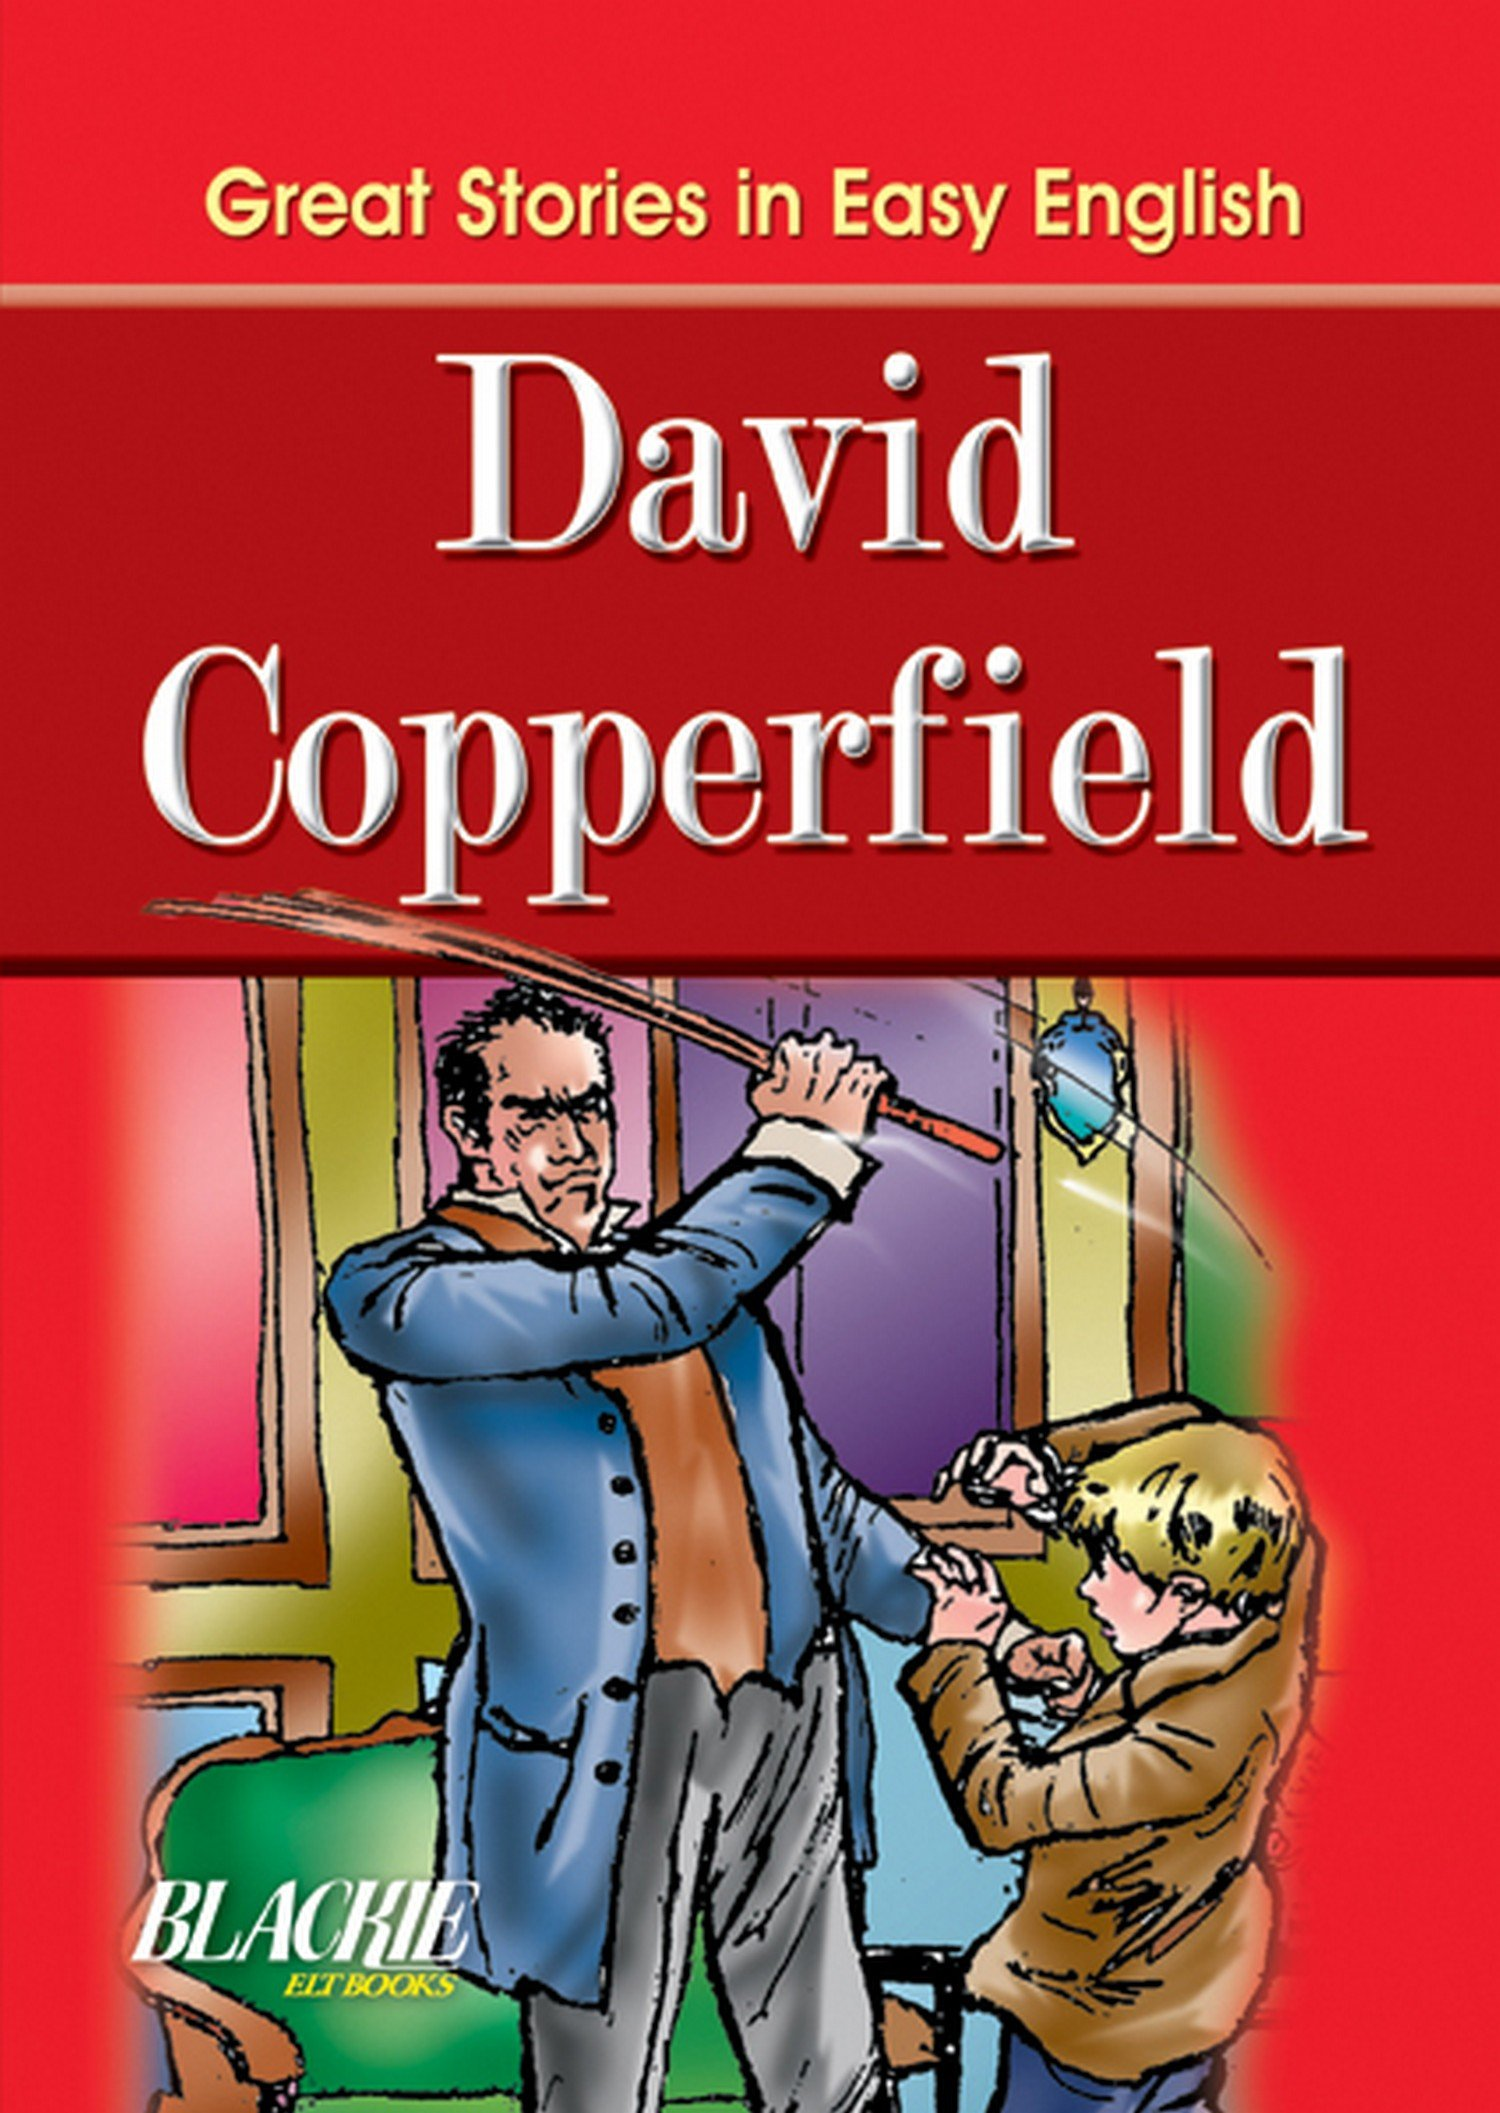 great stories in easy english david copperfield s chand  great stories in easy english david copperfield s chand company 9788121922531 com books